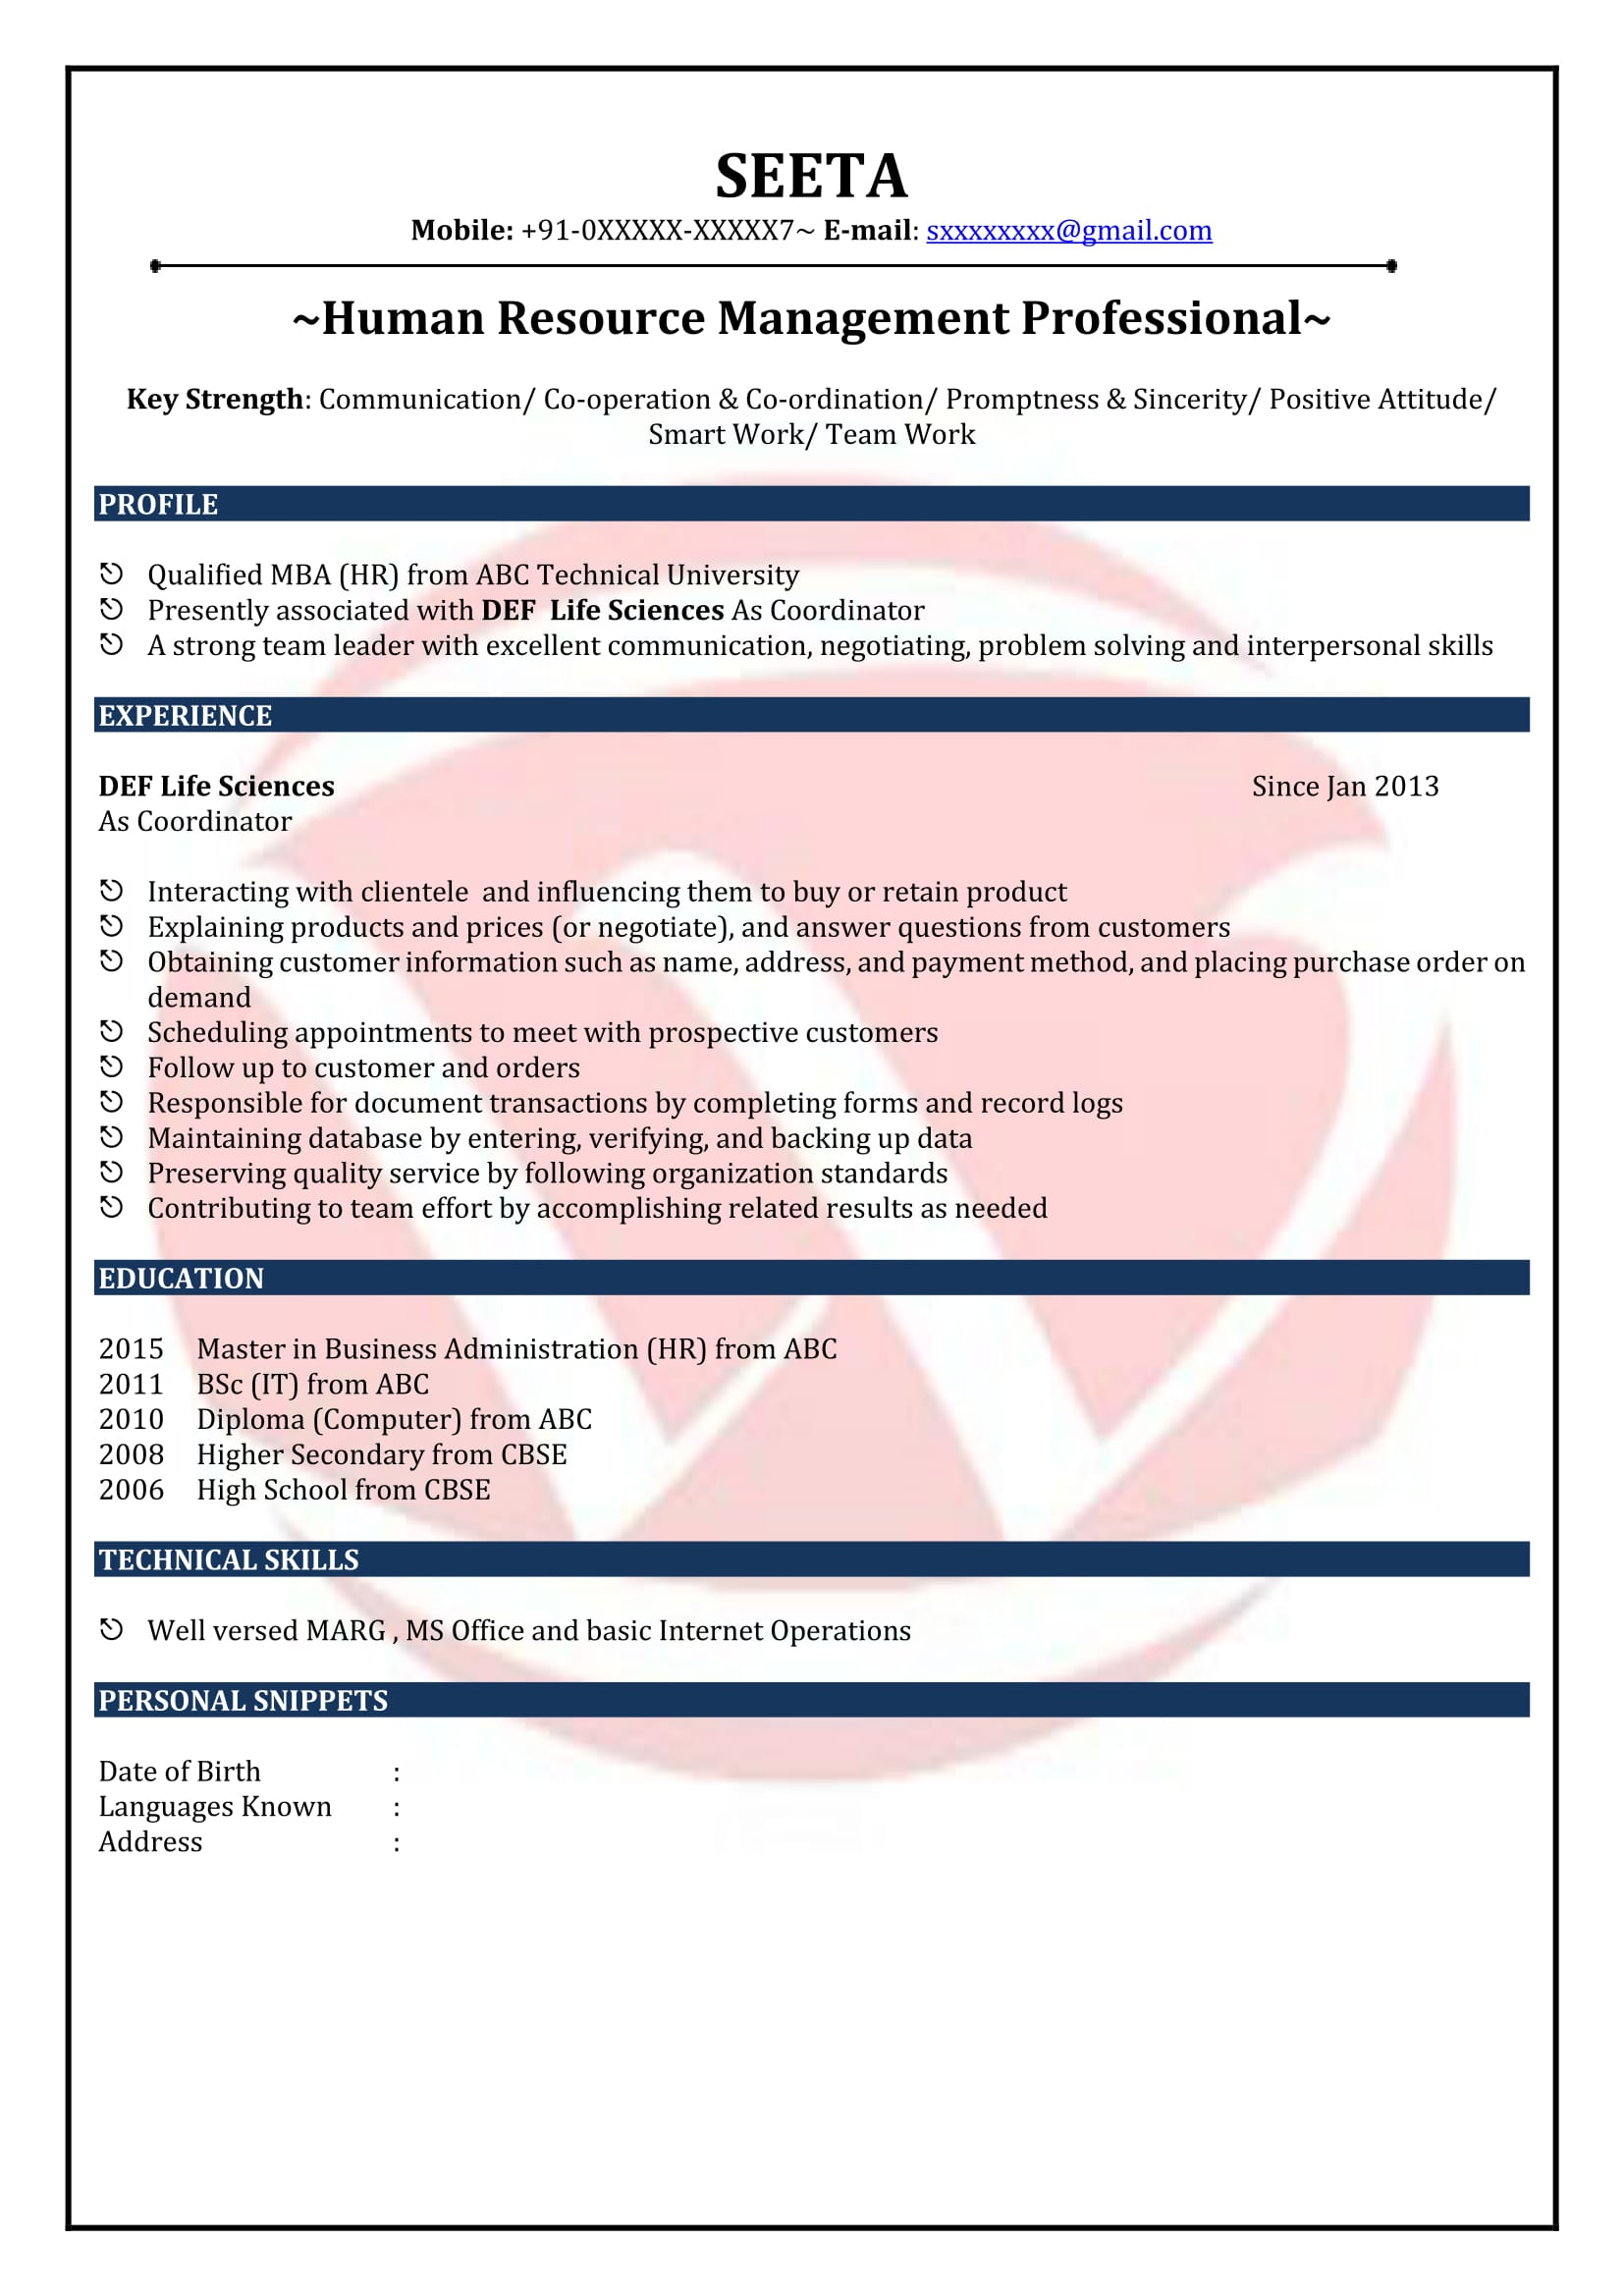 HR Fresher Sample Resumes Download Resume Format Templates